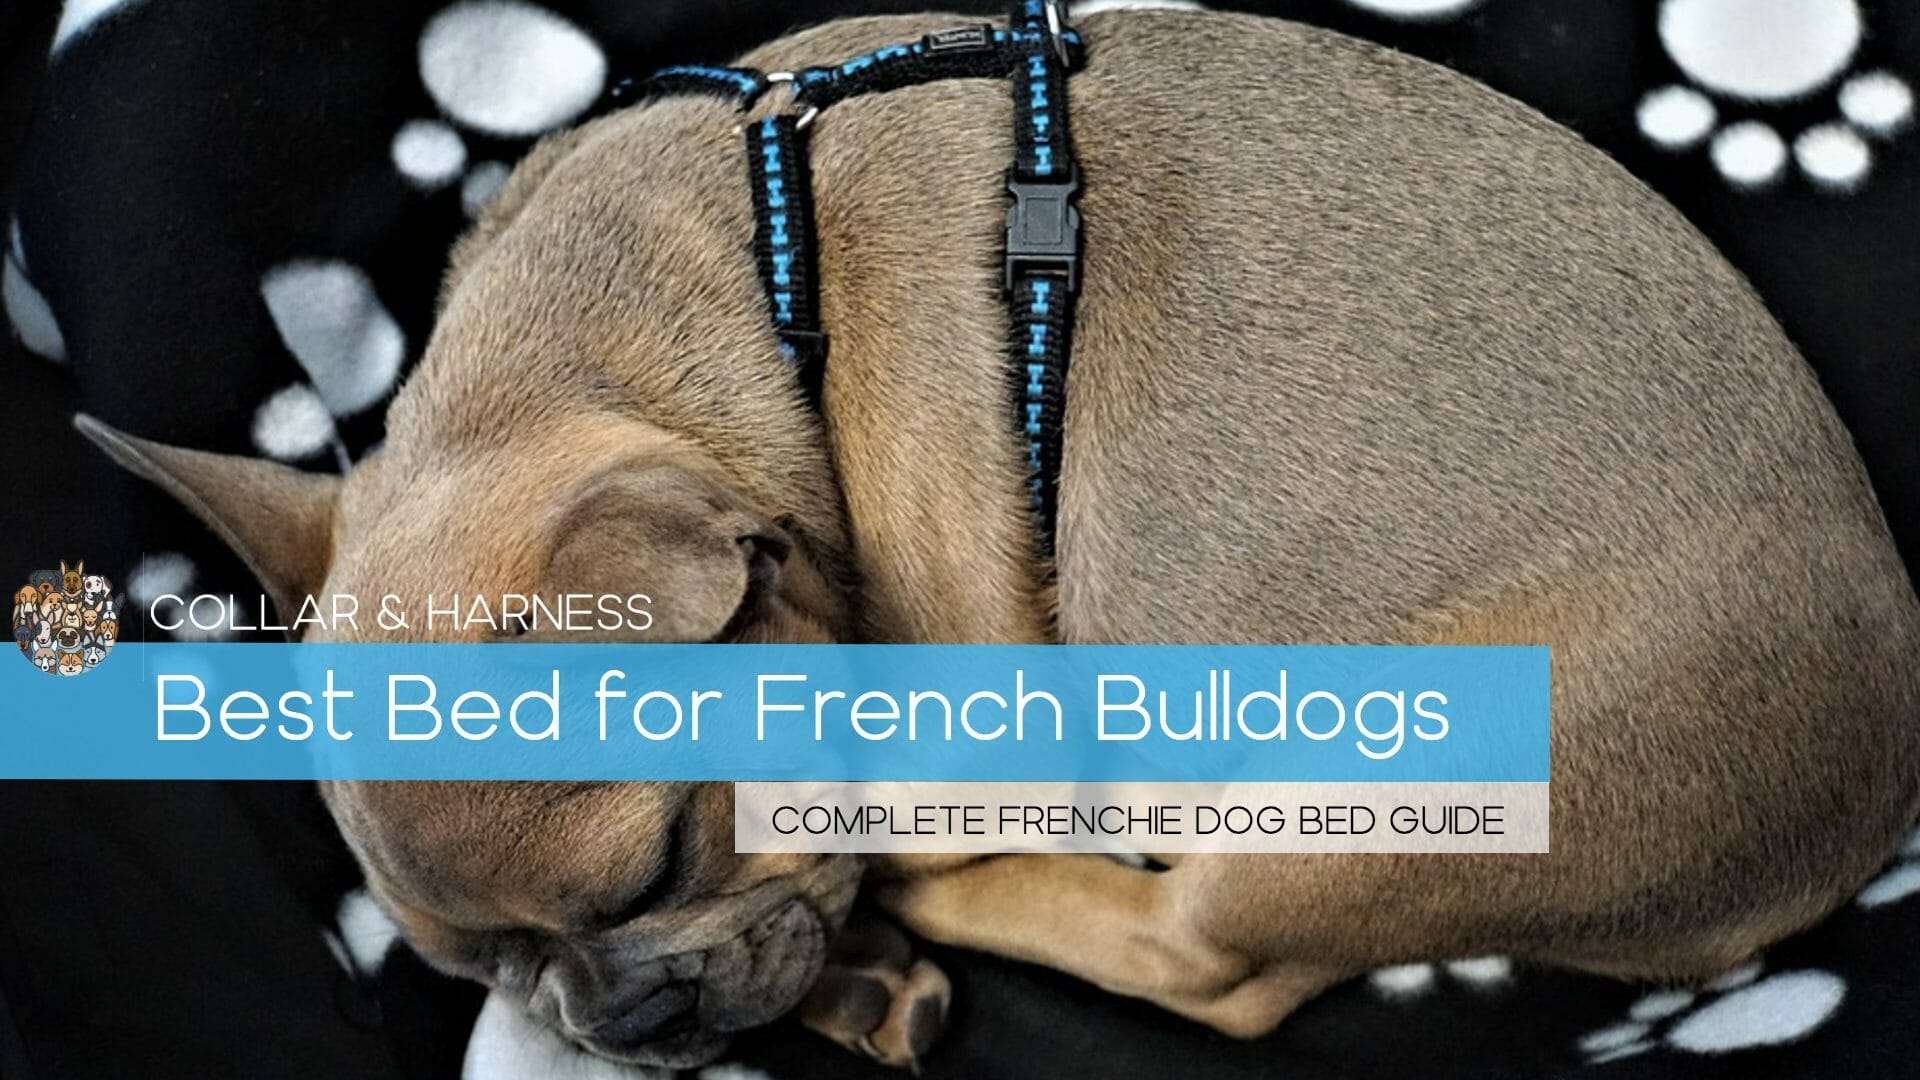 Best Beds For Your French Bulldog - Our Top 6 Dog Beds